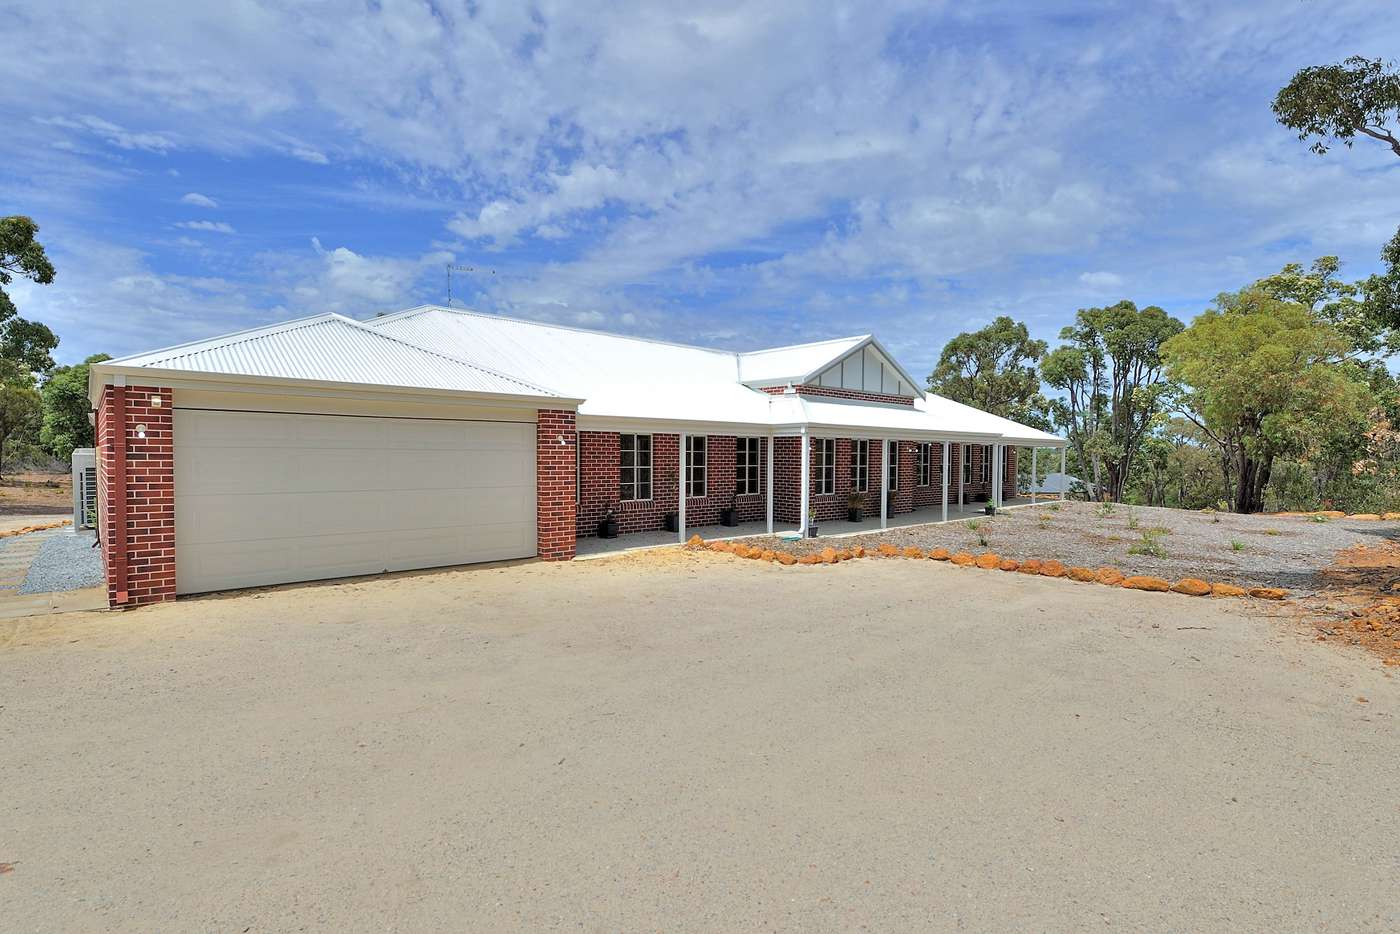 Main view of Homely house listing, 16 Bandicoot Loop, Brigadoon WA 6069